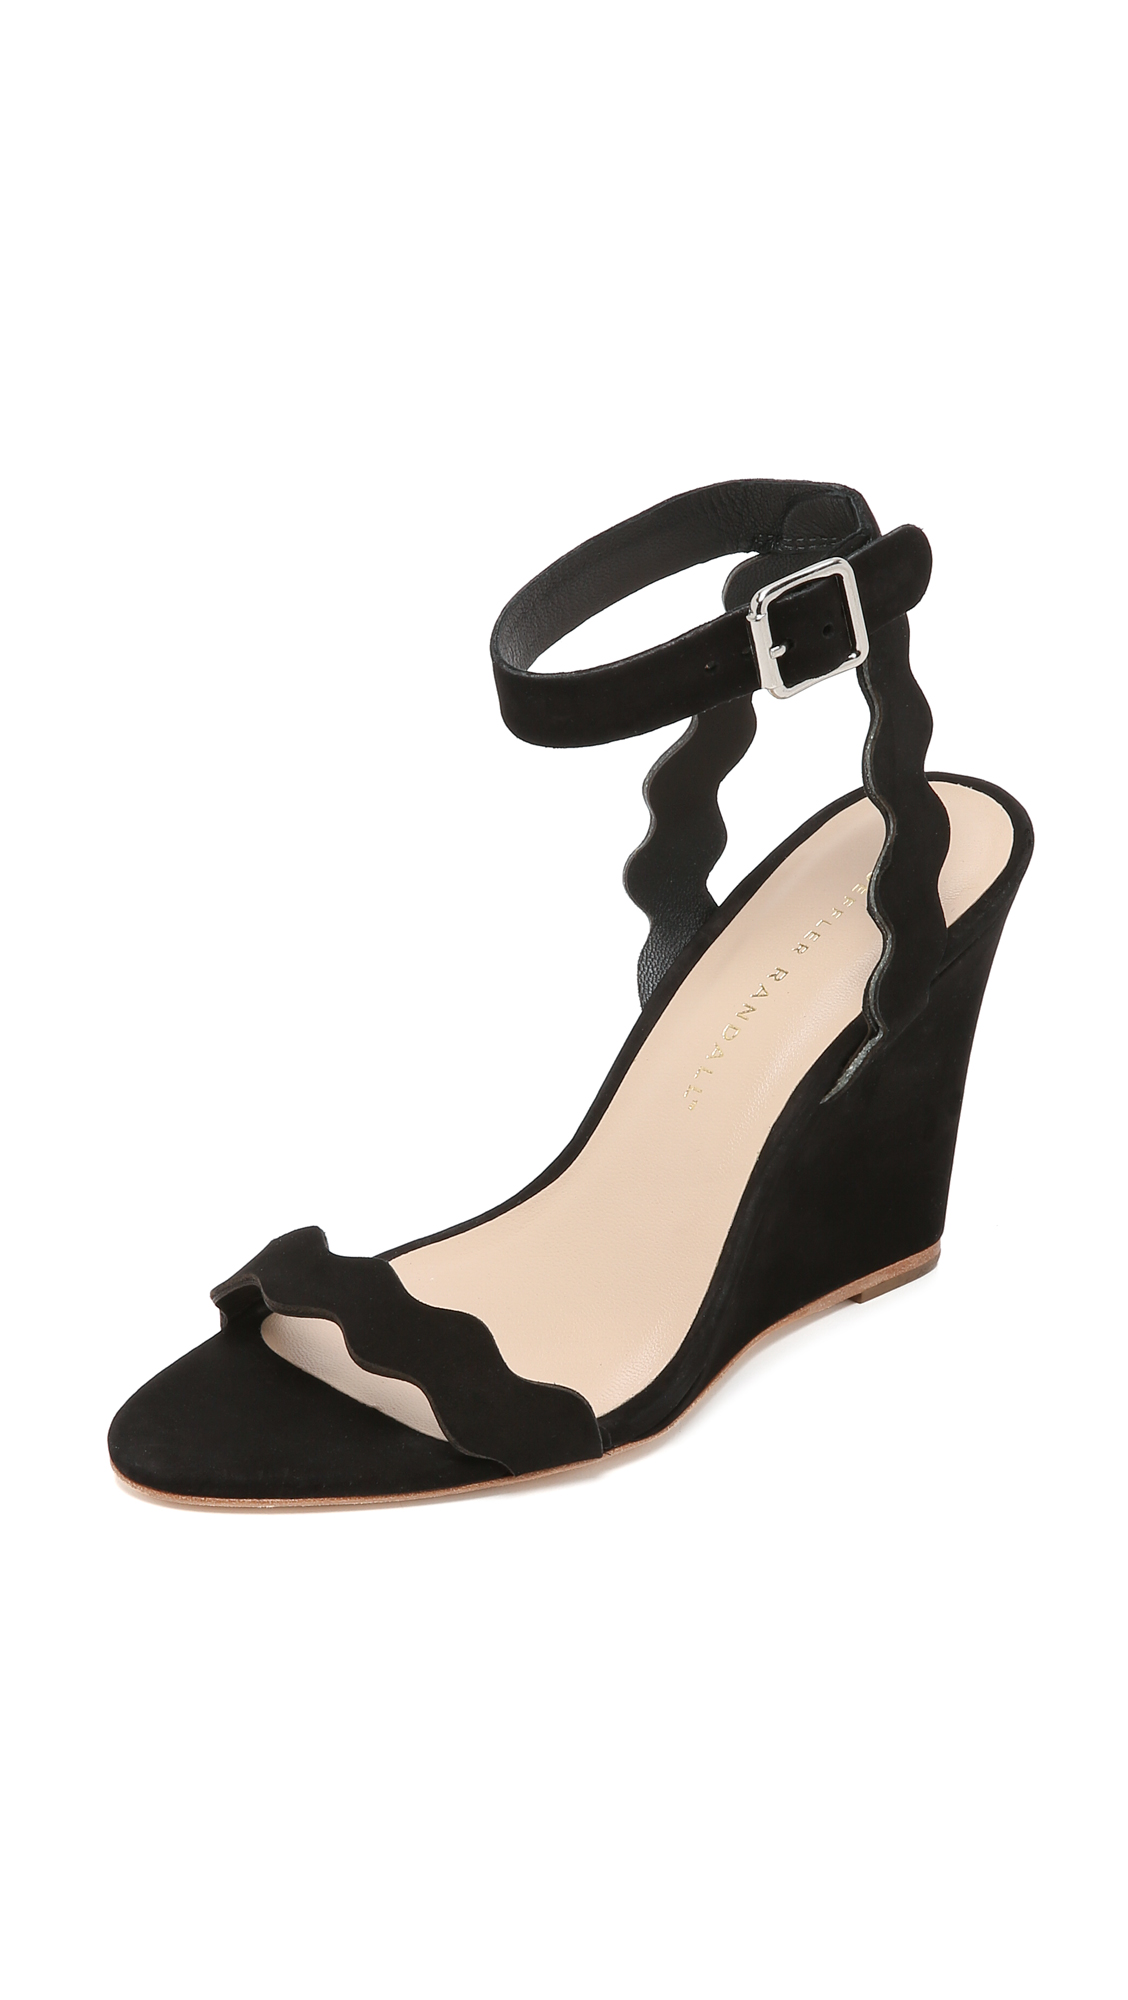 Photo of Loeffler Randall Piper Wedge Sandals online shoes sales